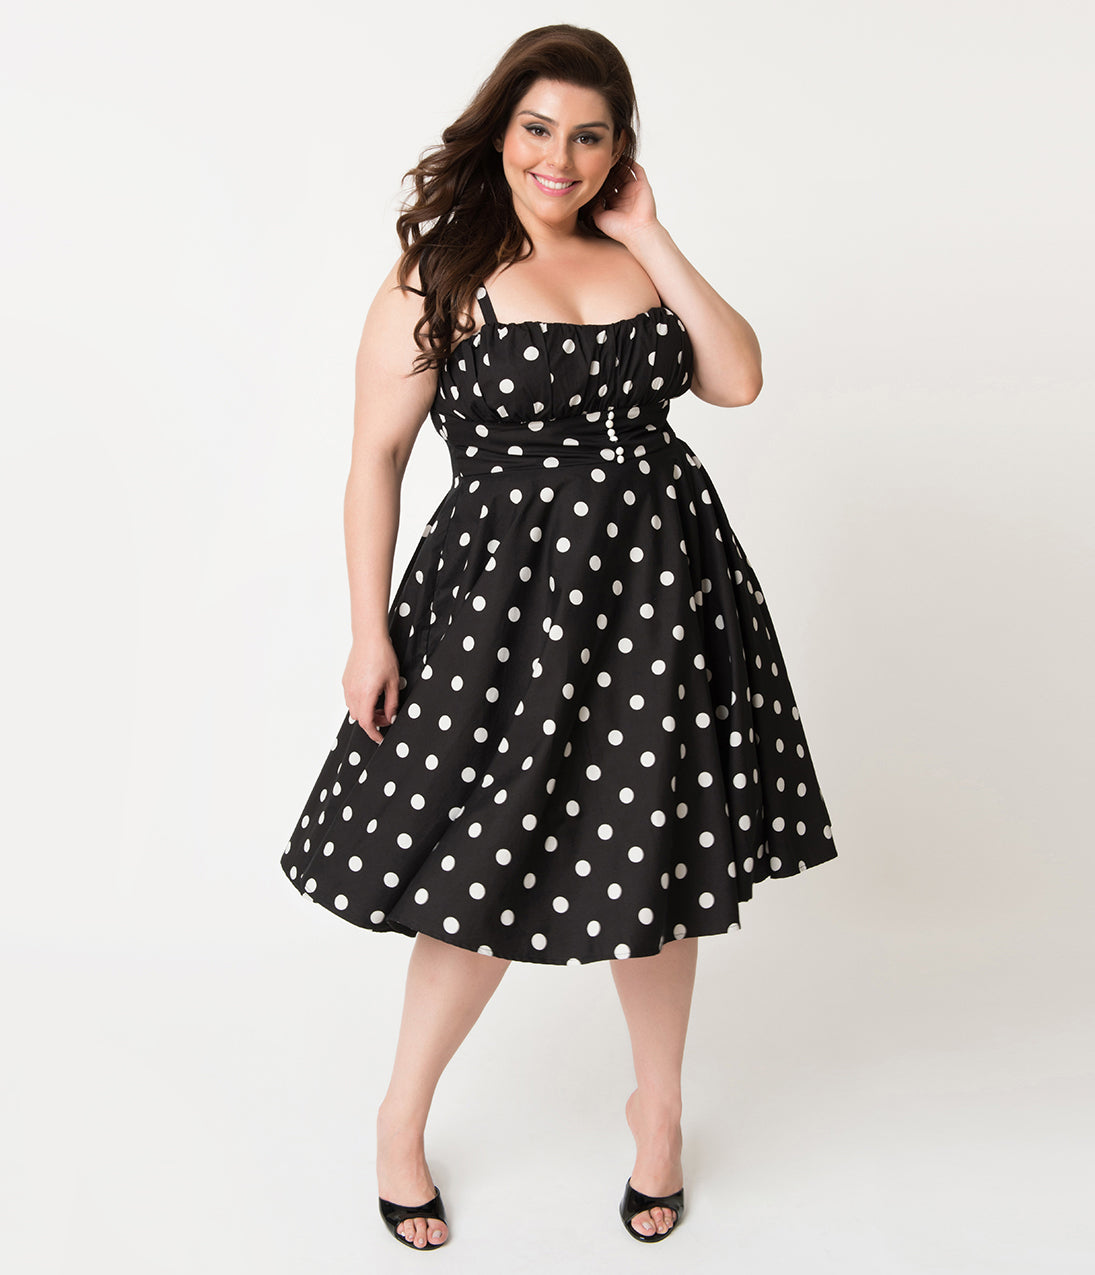 Polka Dot Dresses: 20s, 30s, 40s, 50s, 60s Plus Size Retro Style Black  White Dot Cotton Bonnie Swing Dress $68.00 AT vintagedancer.com